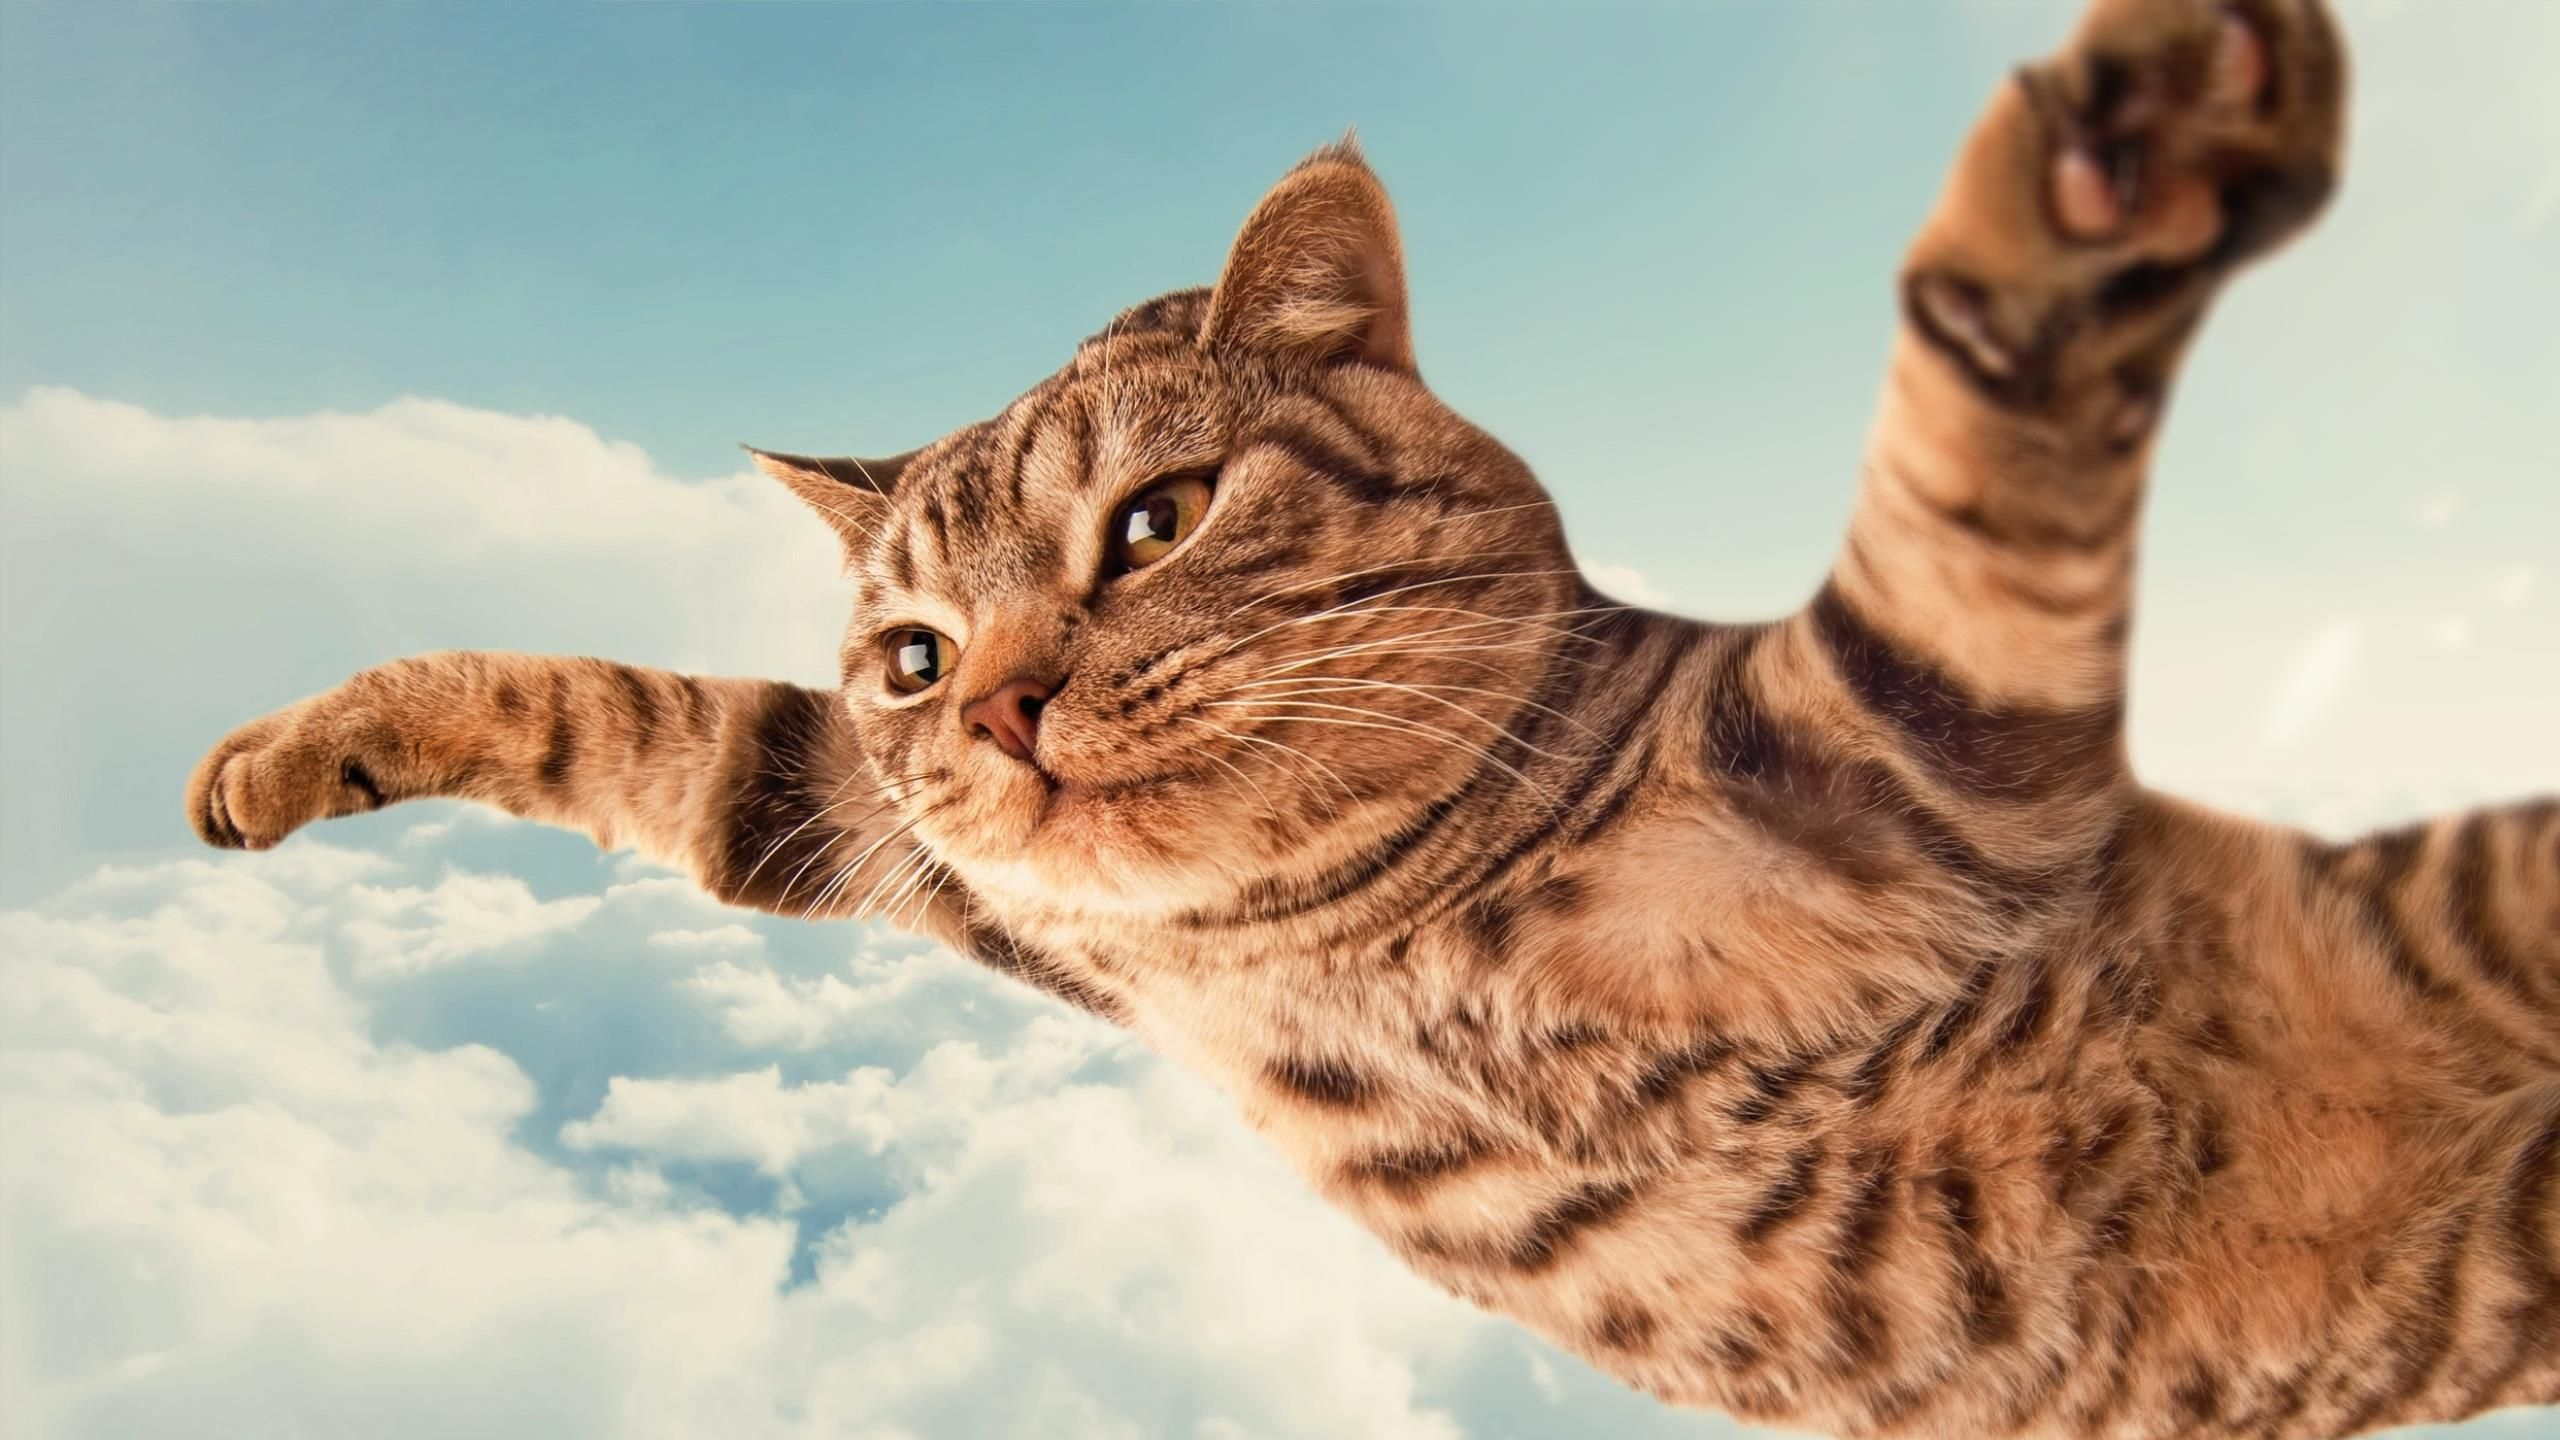 Cool Flying Cat Funny Wallpaper Other Wallpapers Pinterest